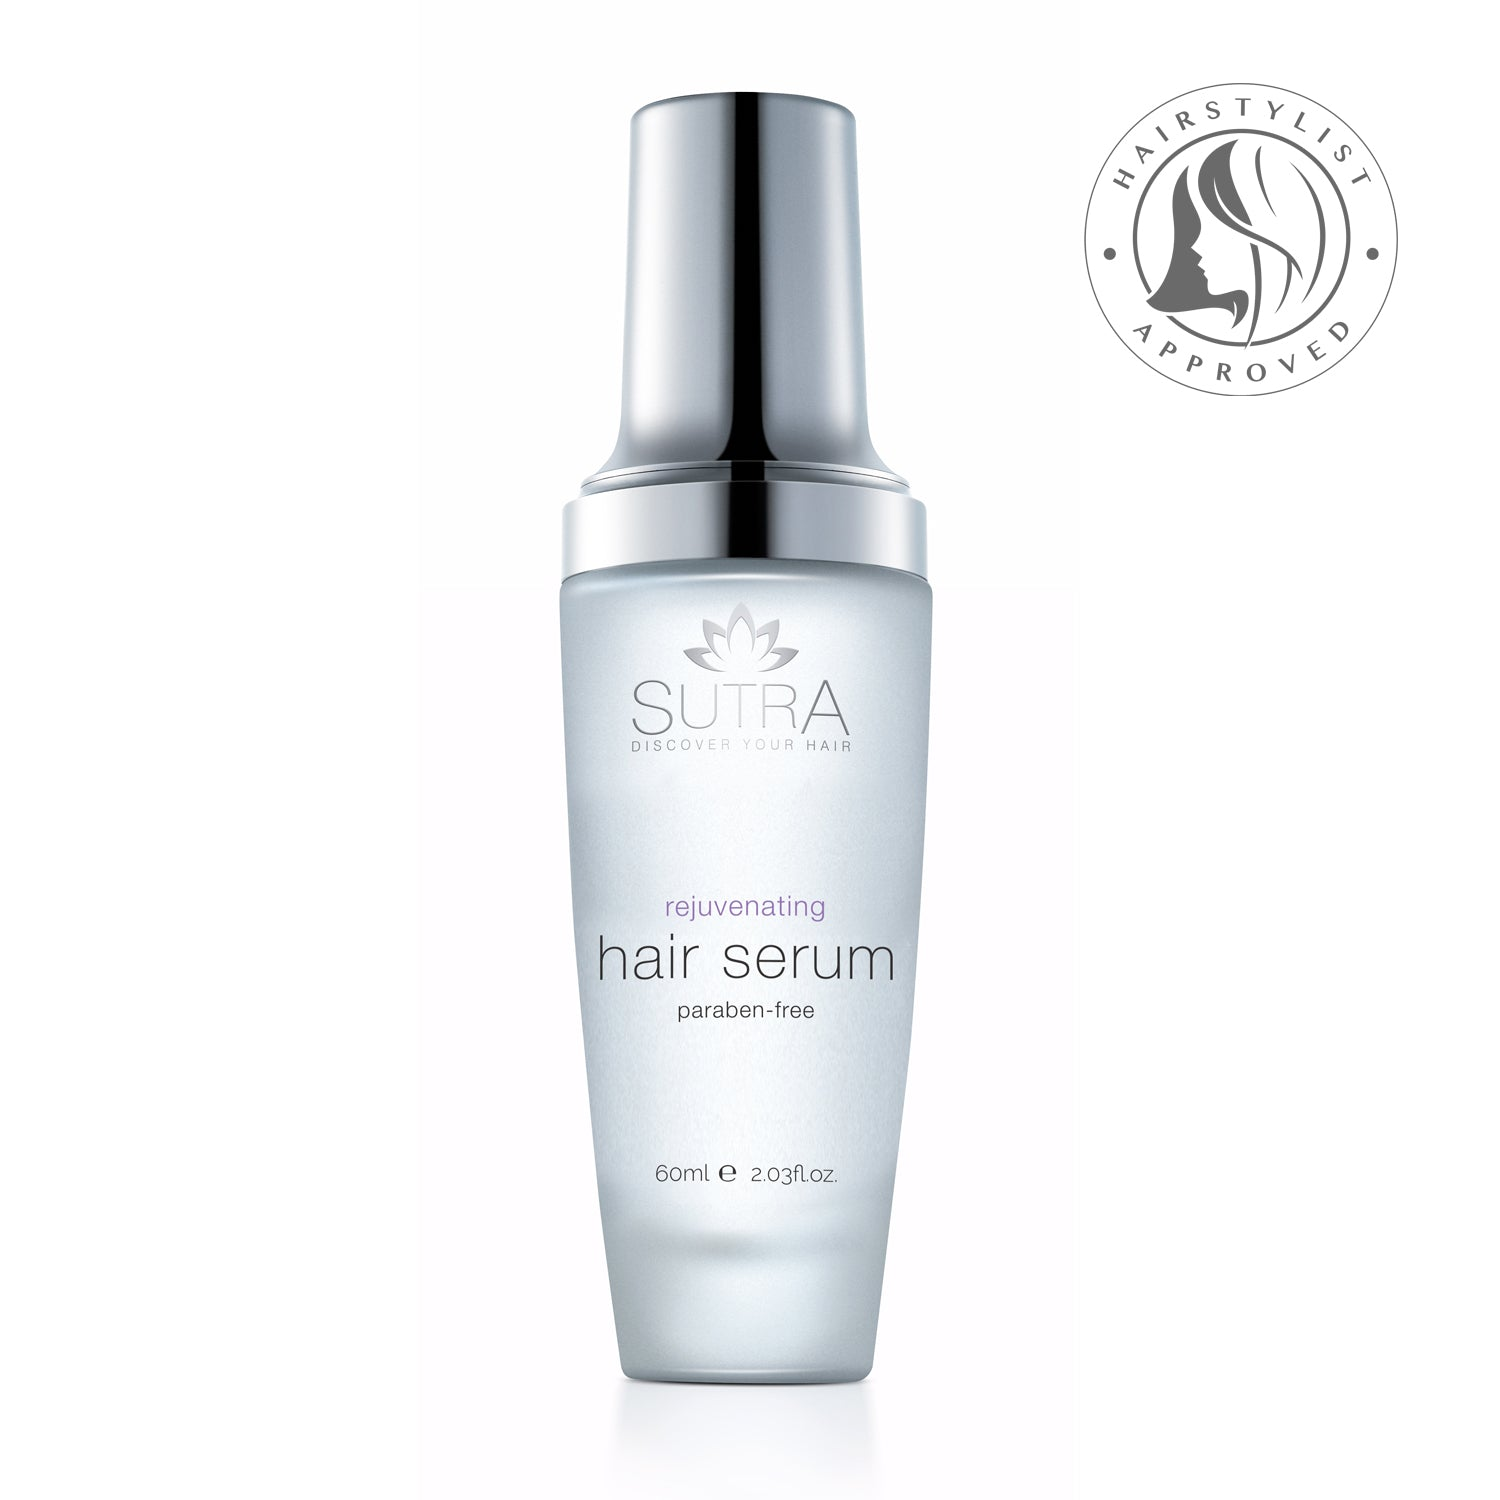 Rejuvenating Hair Serum 2.03 fl oz.